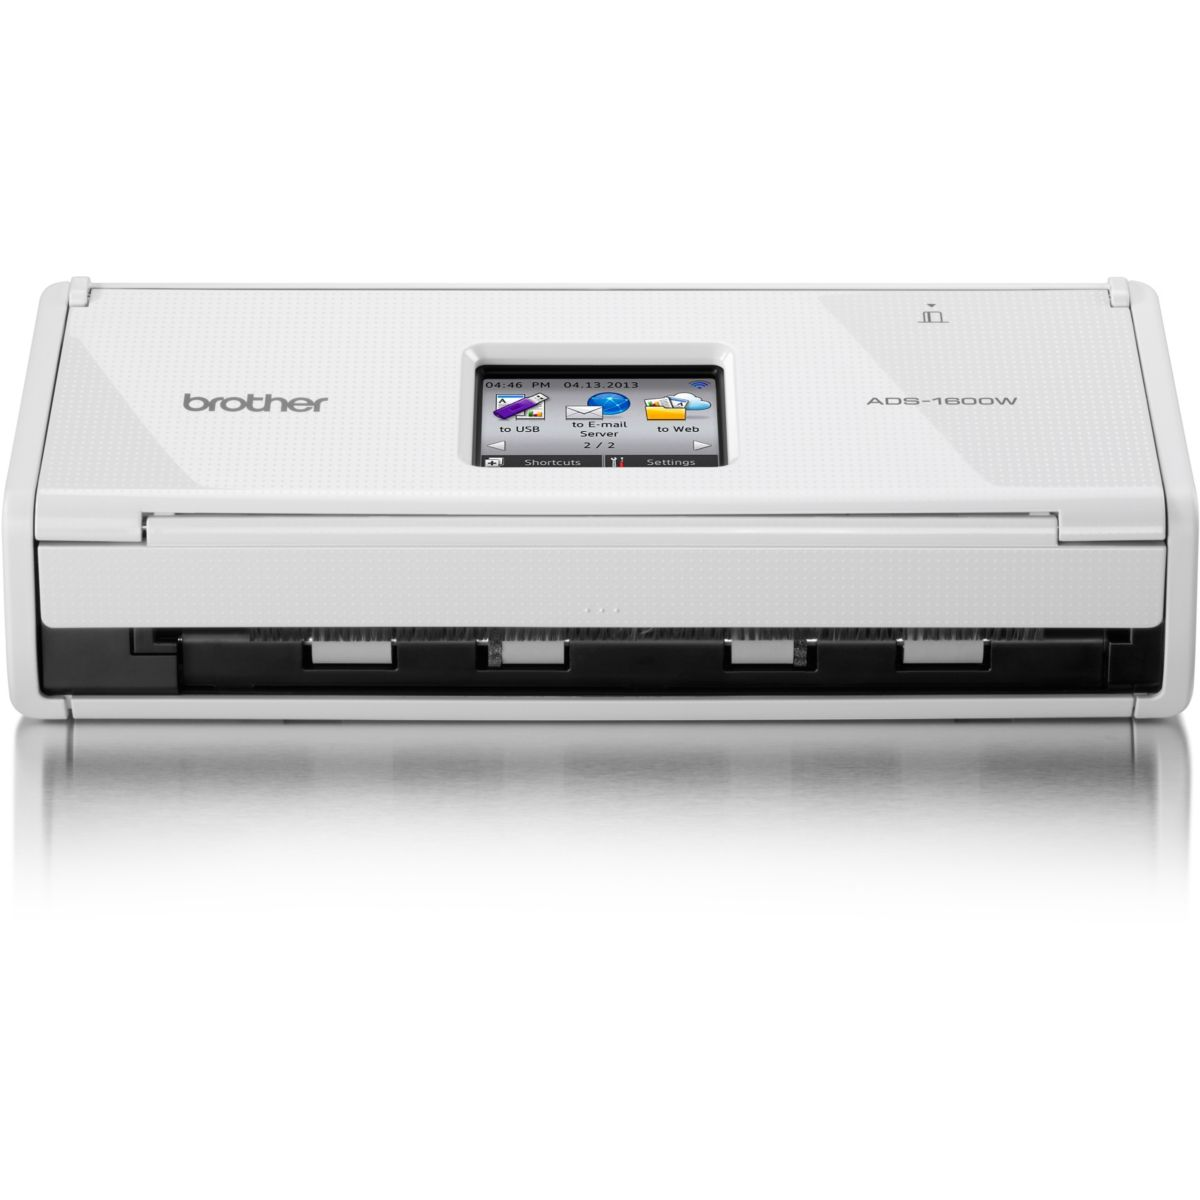 Scanner brother ads-1600w (photo)